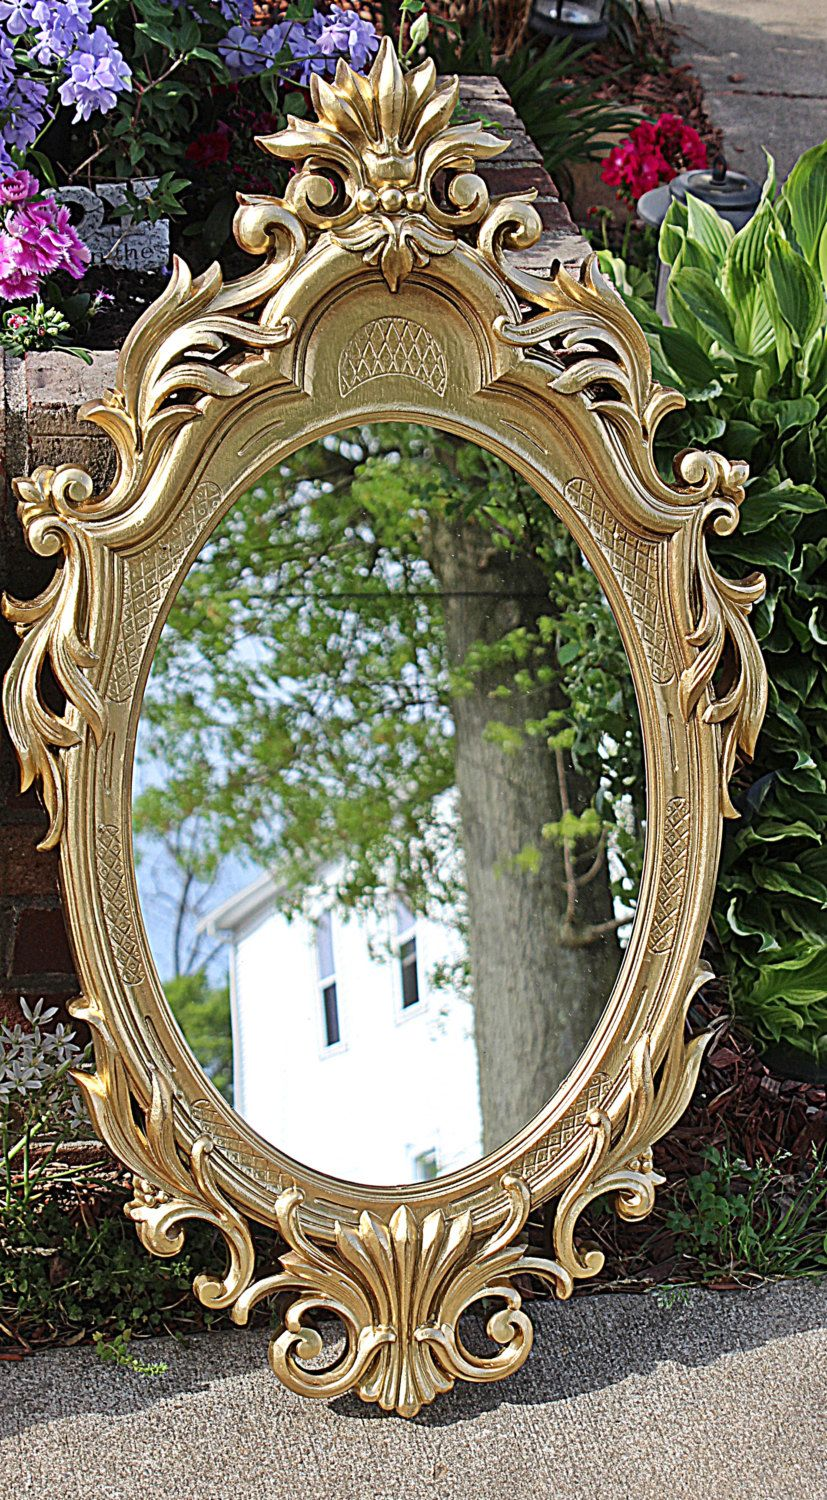 Wilko baroque mirror silver 87x62cm - Gorgeous Mirror Syroco Gold Beautiful Ornate Mirrors Match With Other Pieces Of Syroco Or